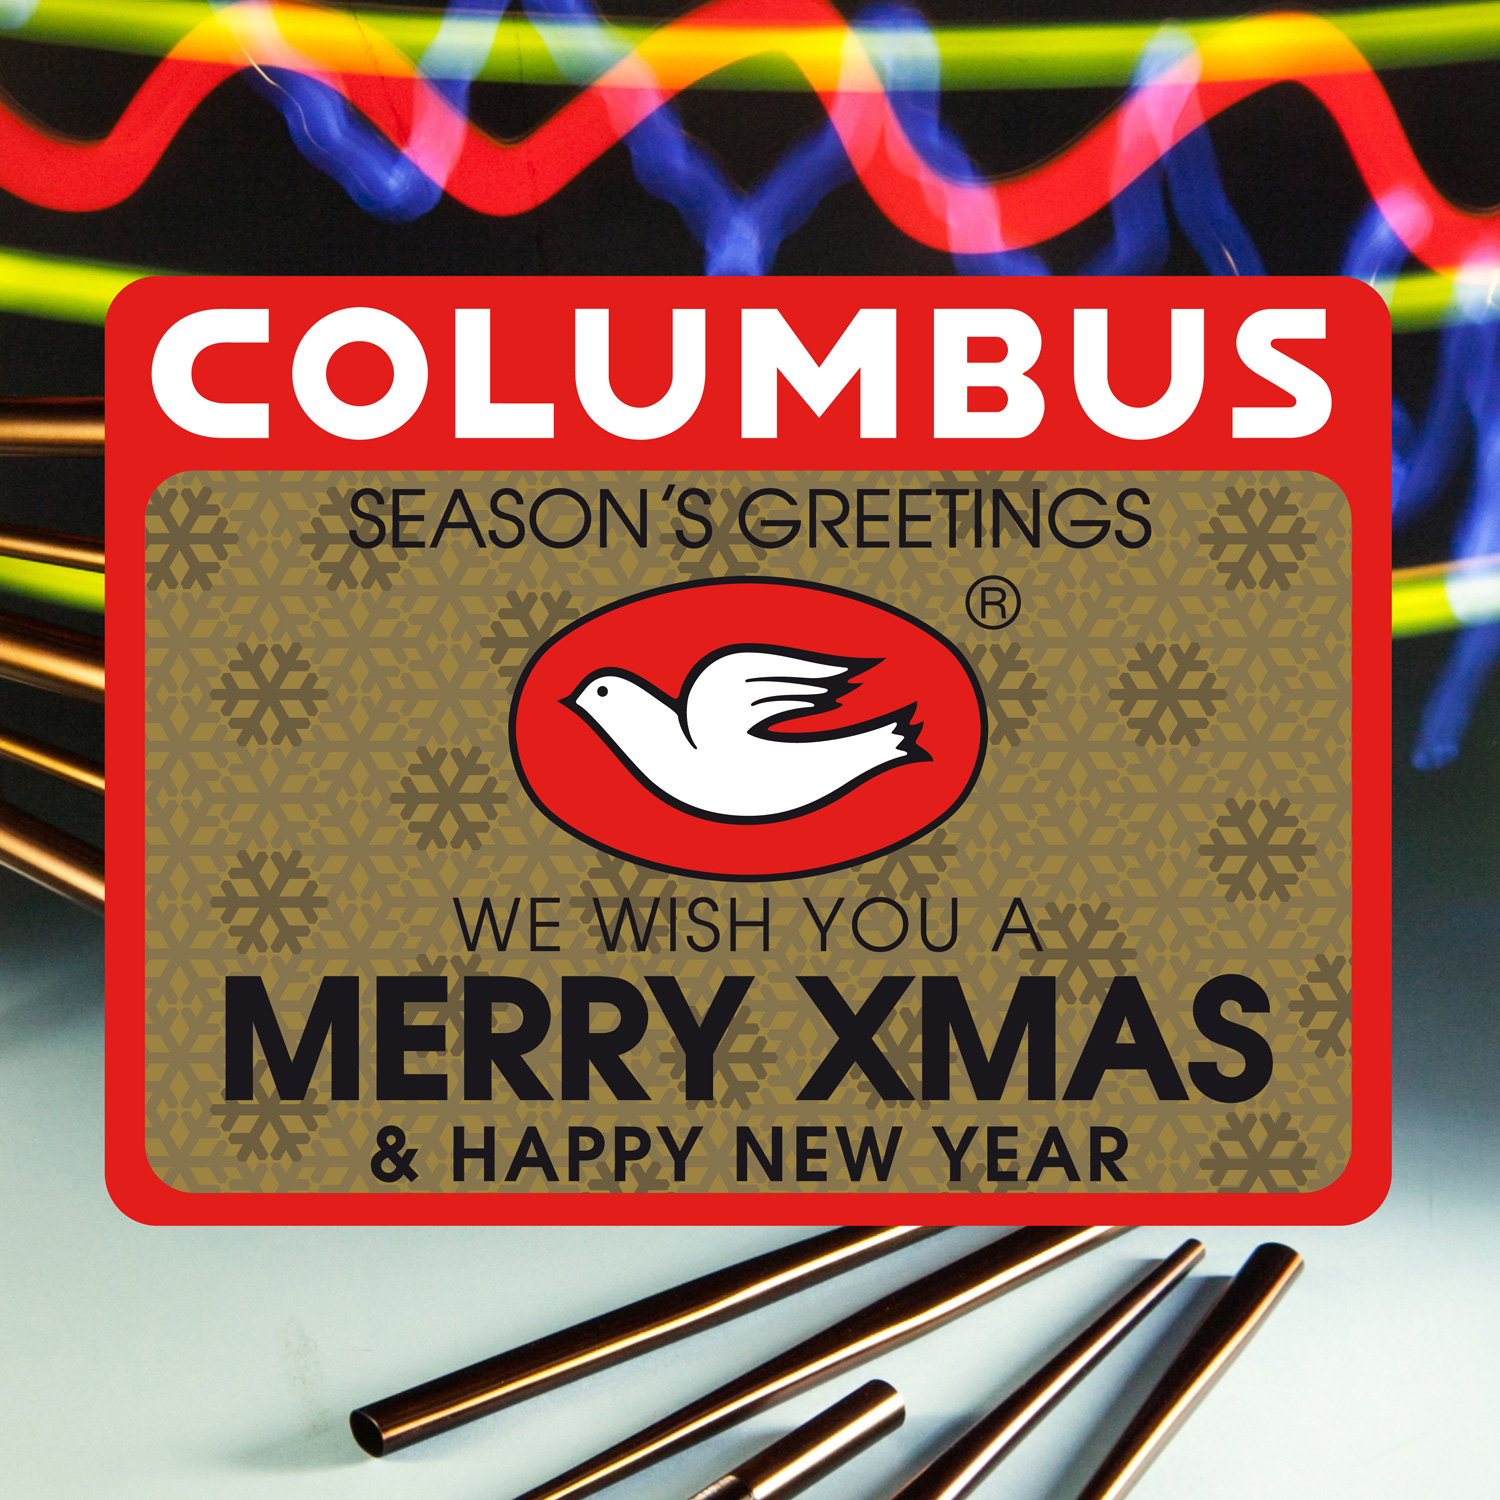 Merry Xmas from Columbus!